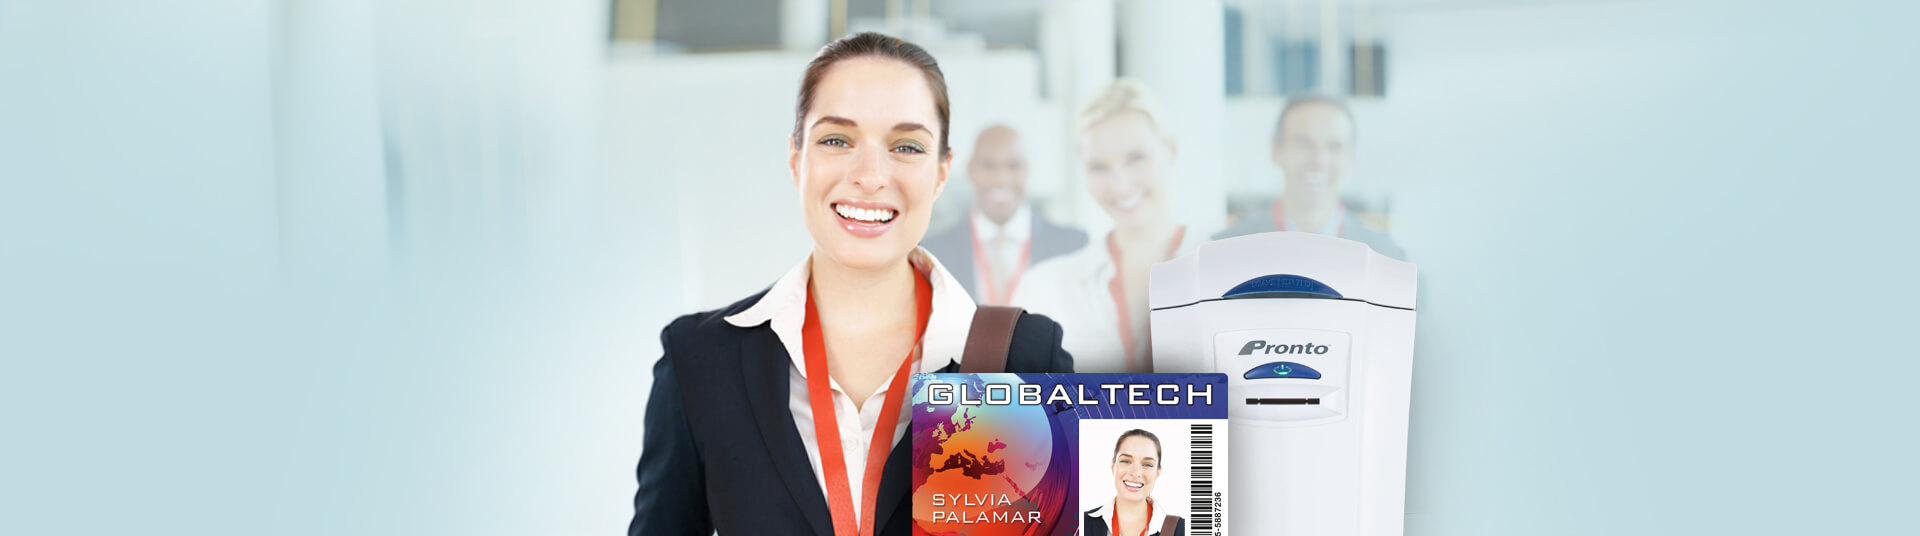 Employee ID Badge System